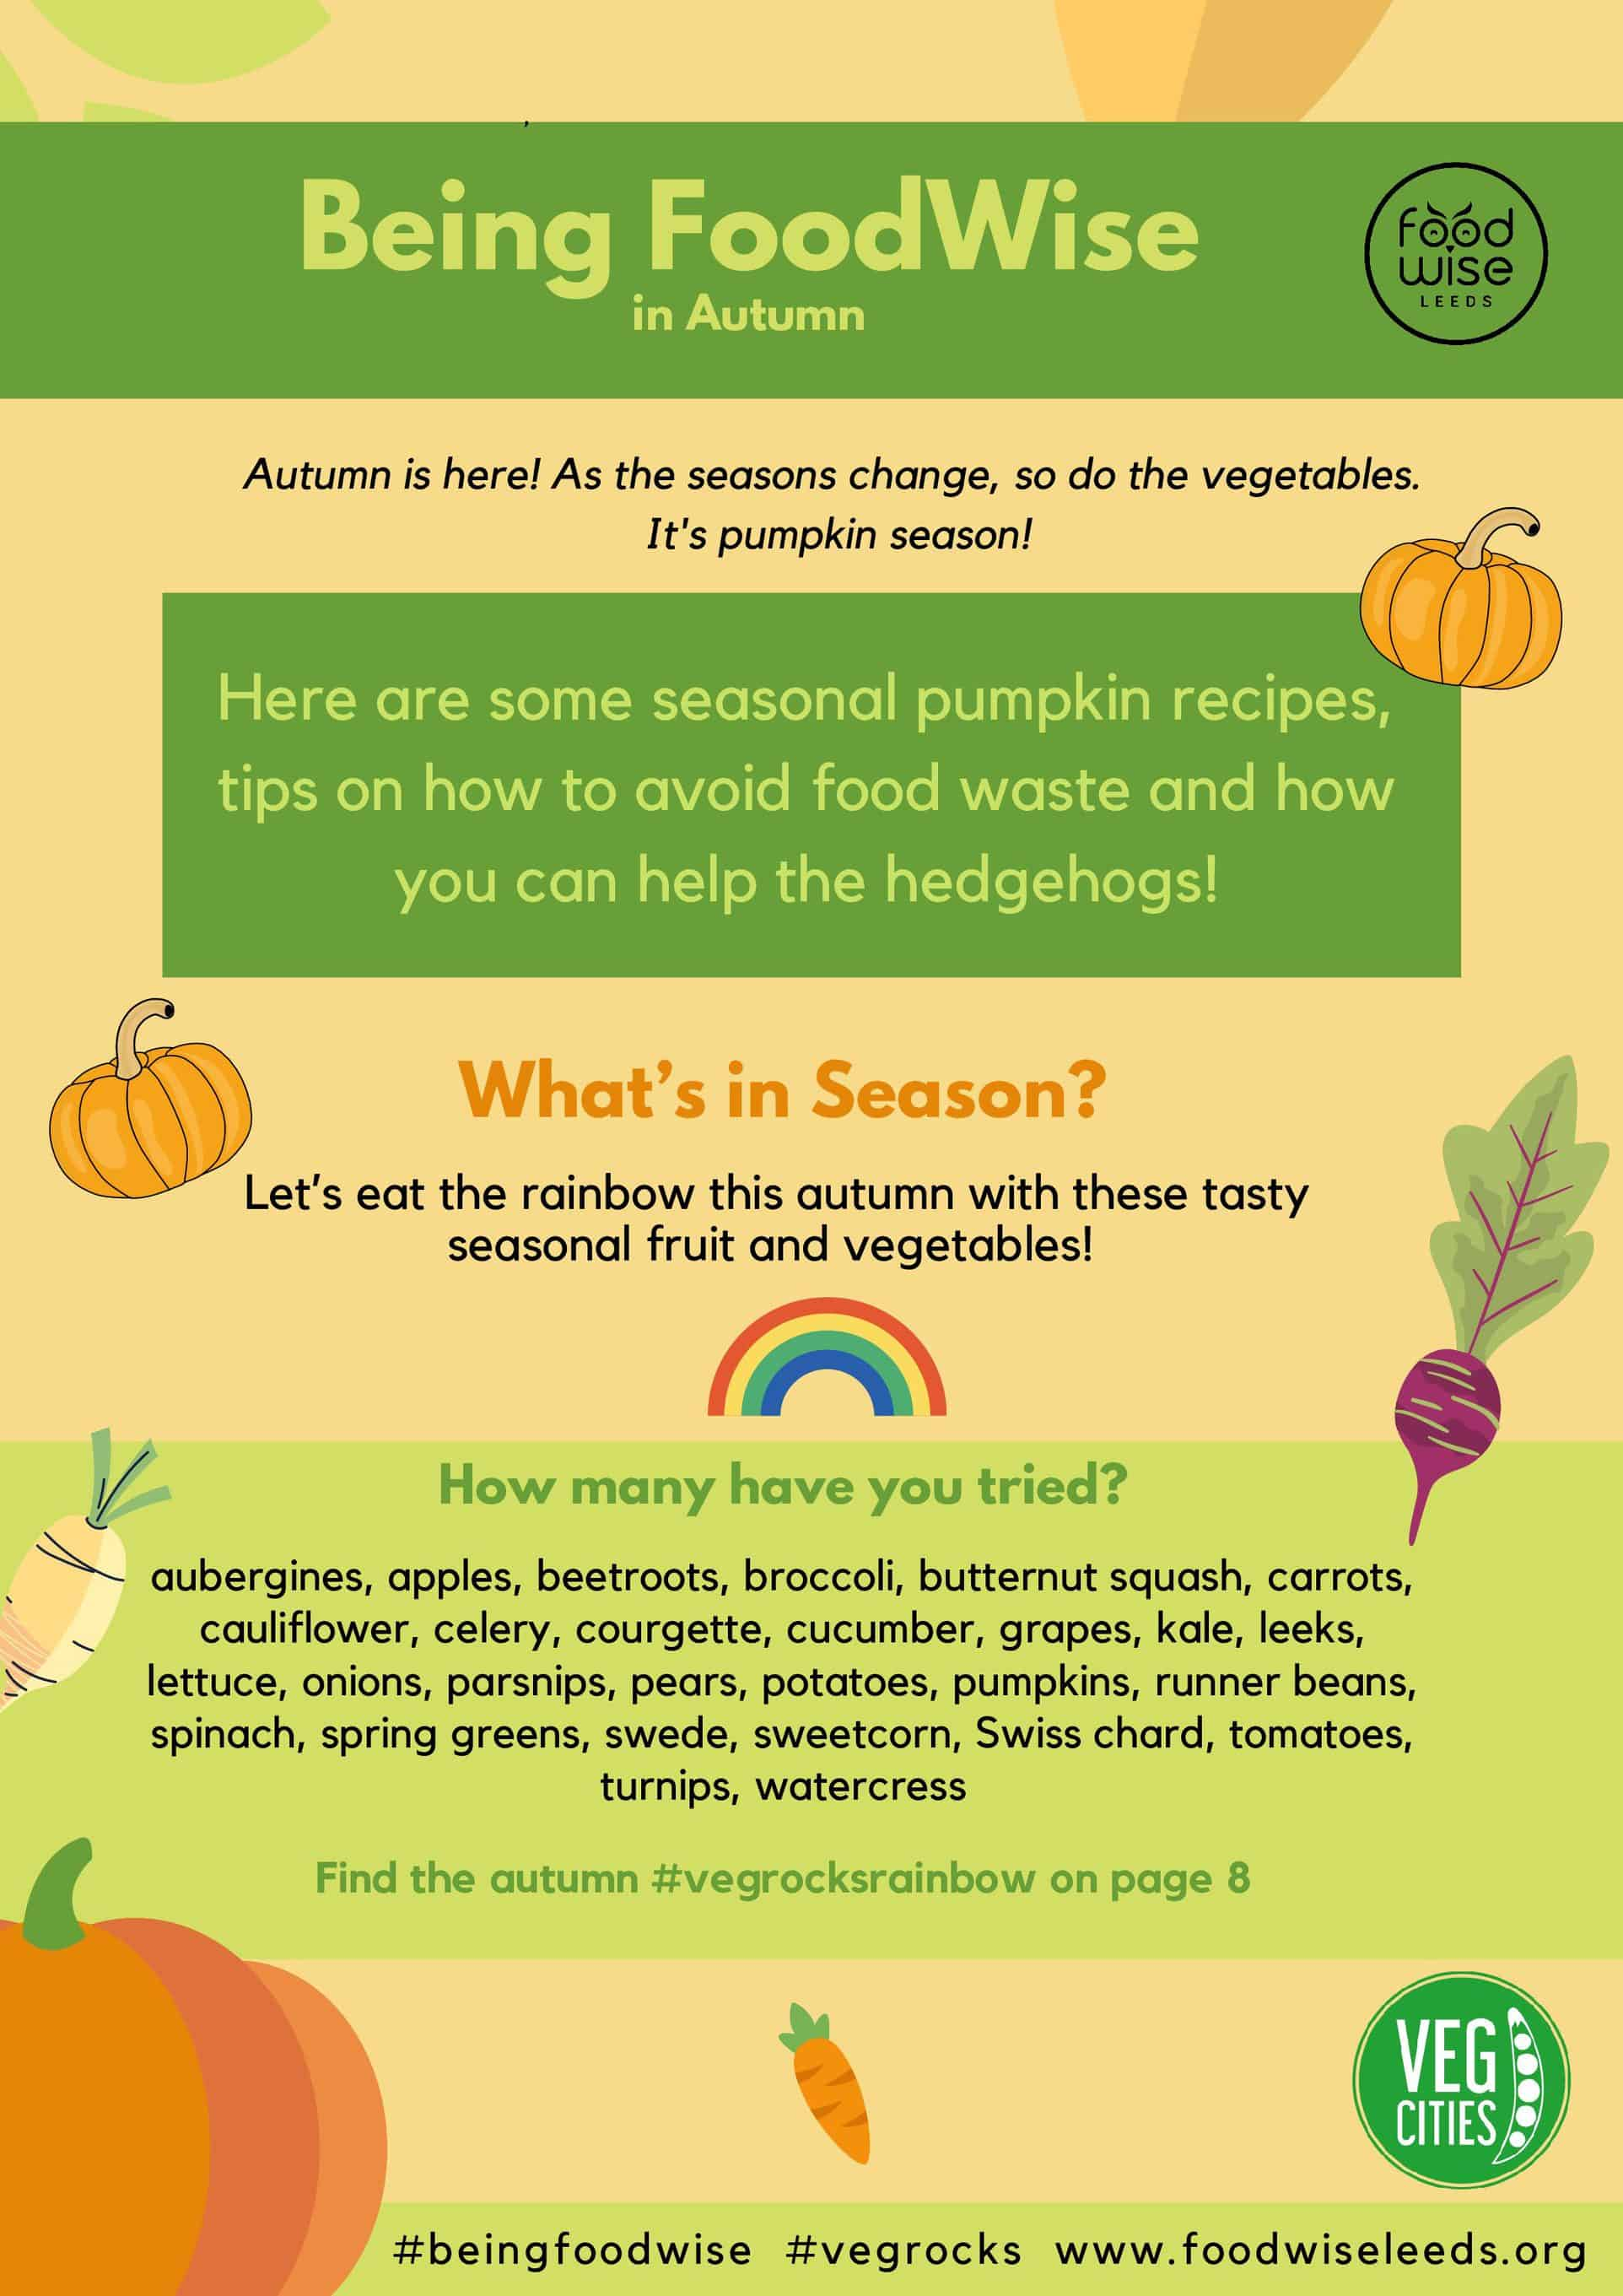 It's Time to #EatYourPumpkin! Being FoodWise Autumn Toolkit